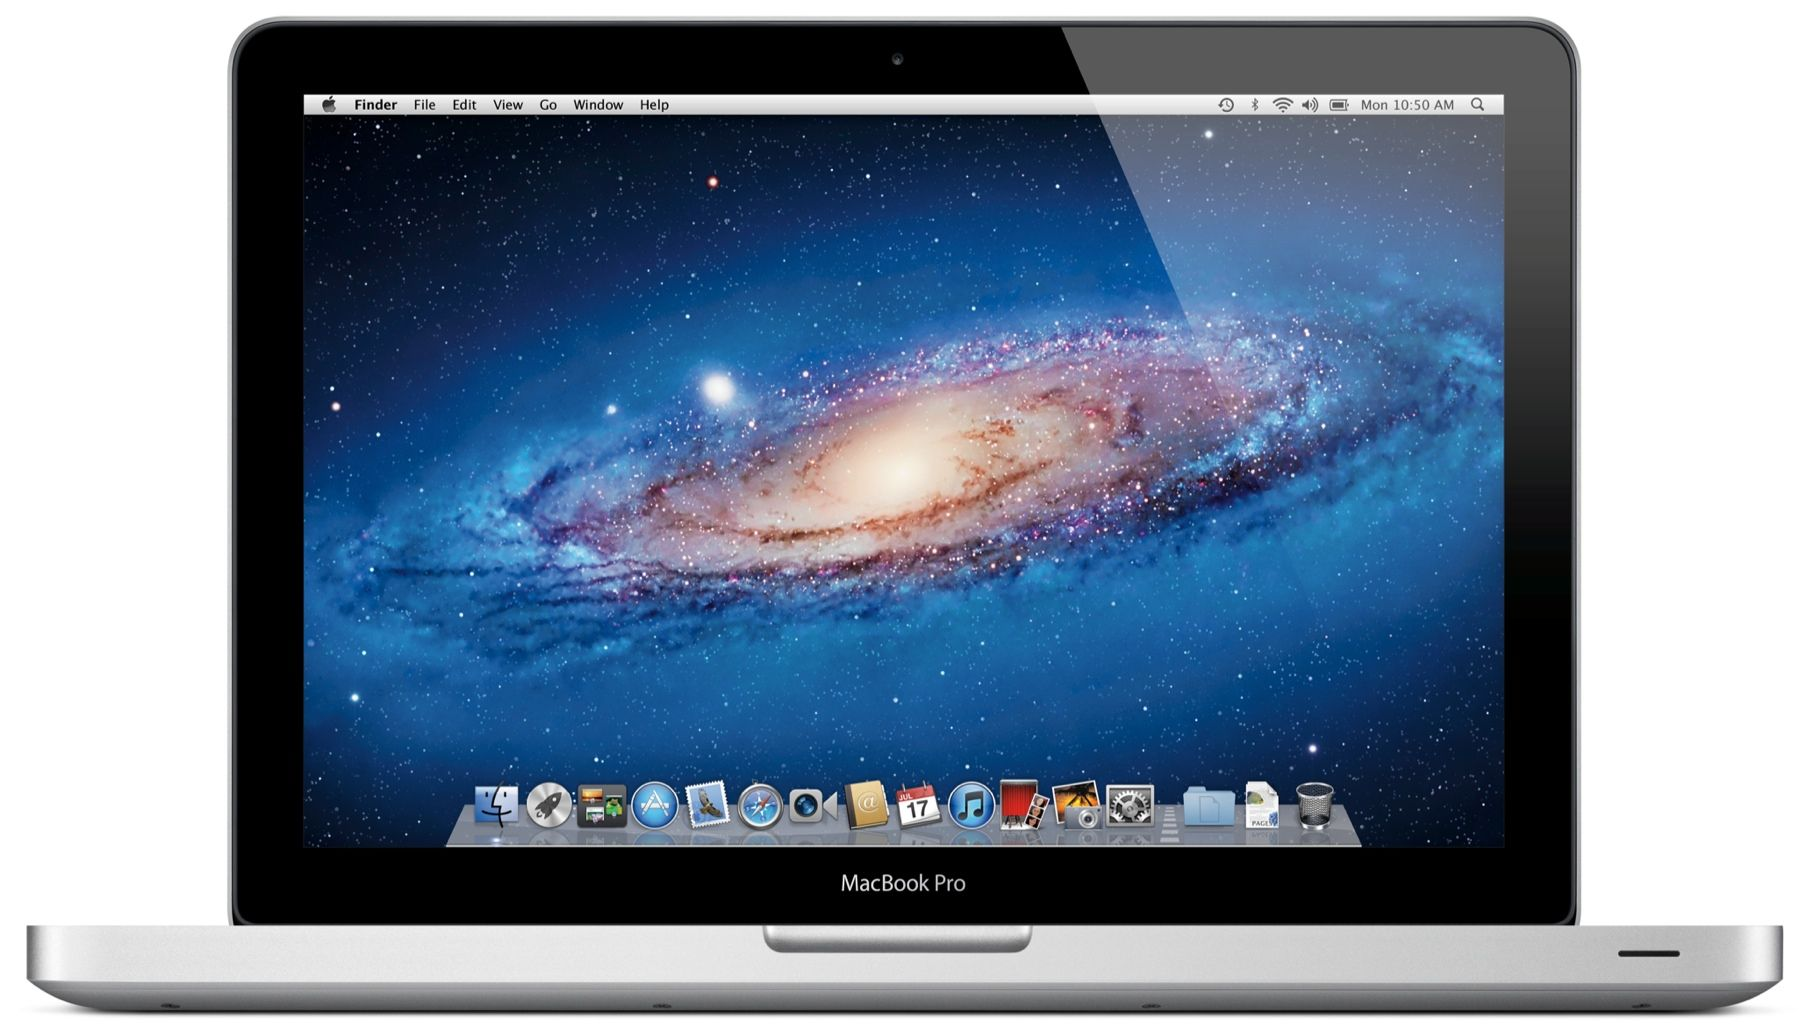 Apple 16 Inch Macbook Pro With Touch Bar 2 6ghz 6 Core 9th Generation Intel Core I7 Processor 512gb Space Gray Buy Macbook Apple Macbook Macbook